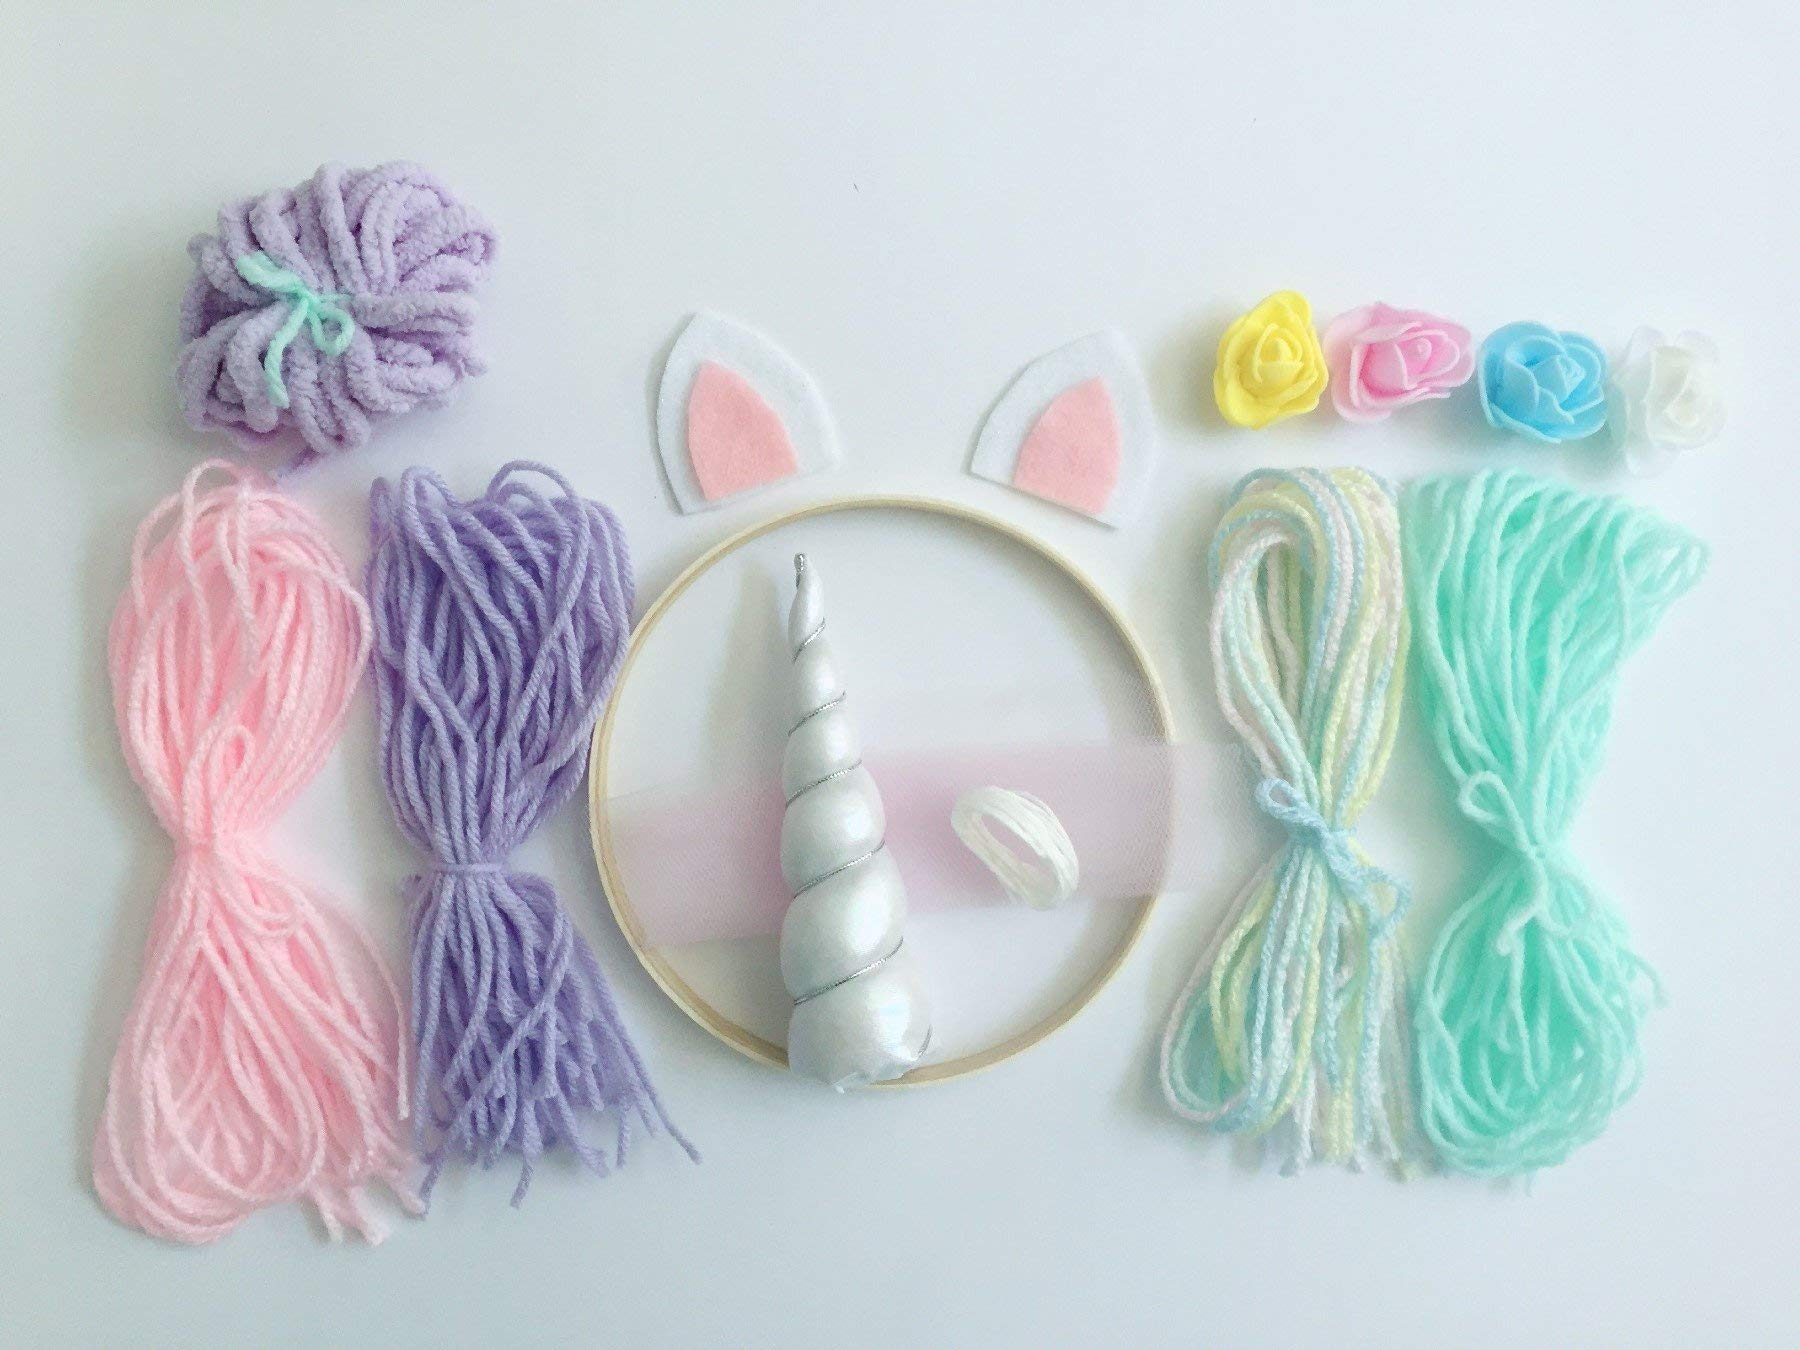 Full Size Make Your Own Unicorn Dream Catcher Kit Kids Craft Gifts for girls 5